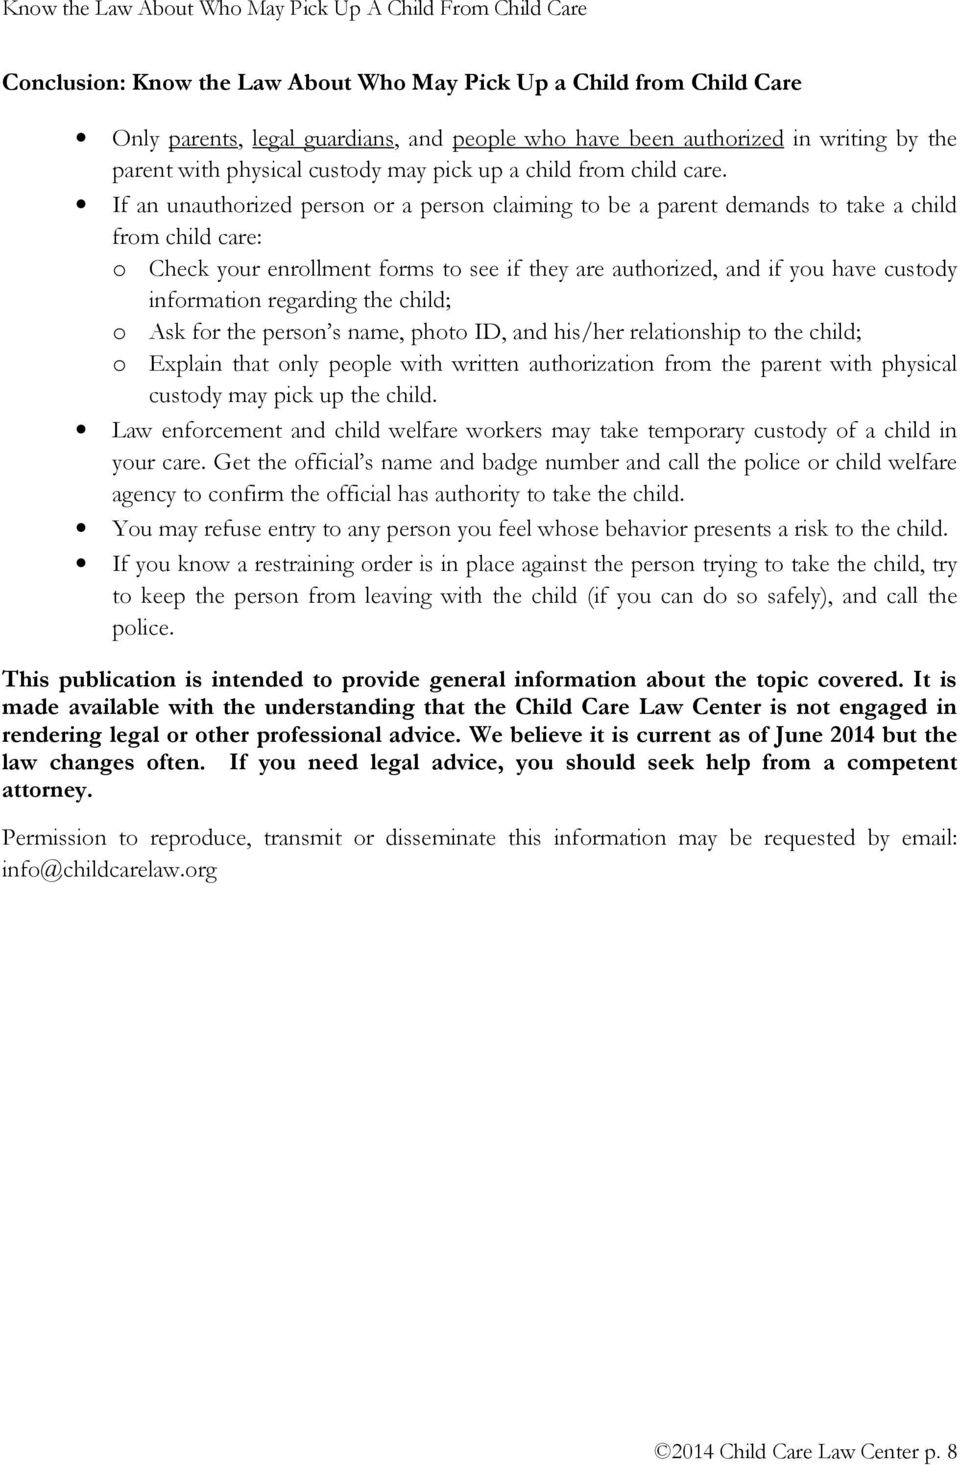 If an unauthorized person or a person claiming to be a parent demands to take a child from child care: o Check your enrollment forms to see if they are authorized, and if you have custody information